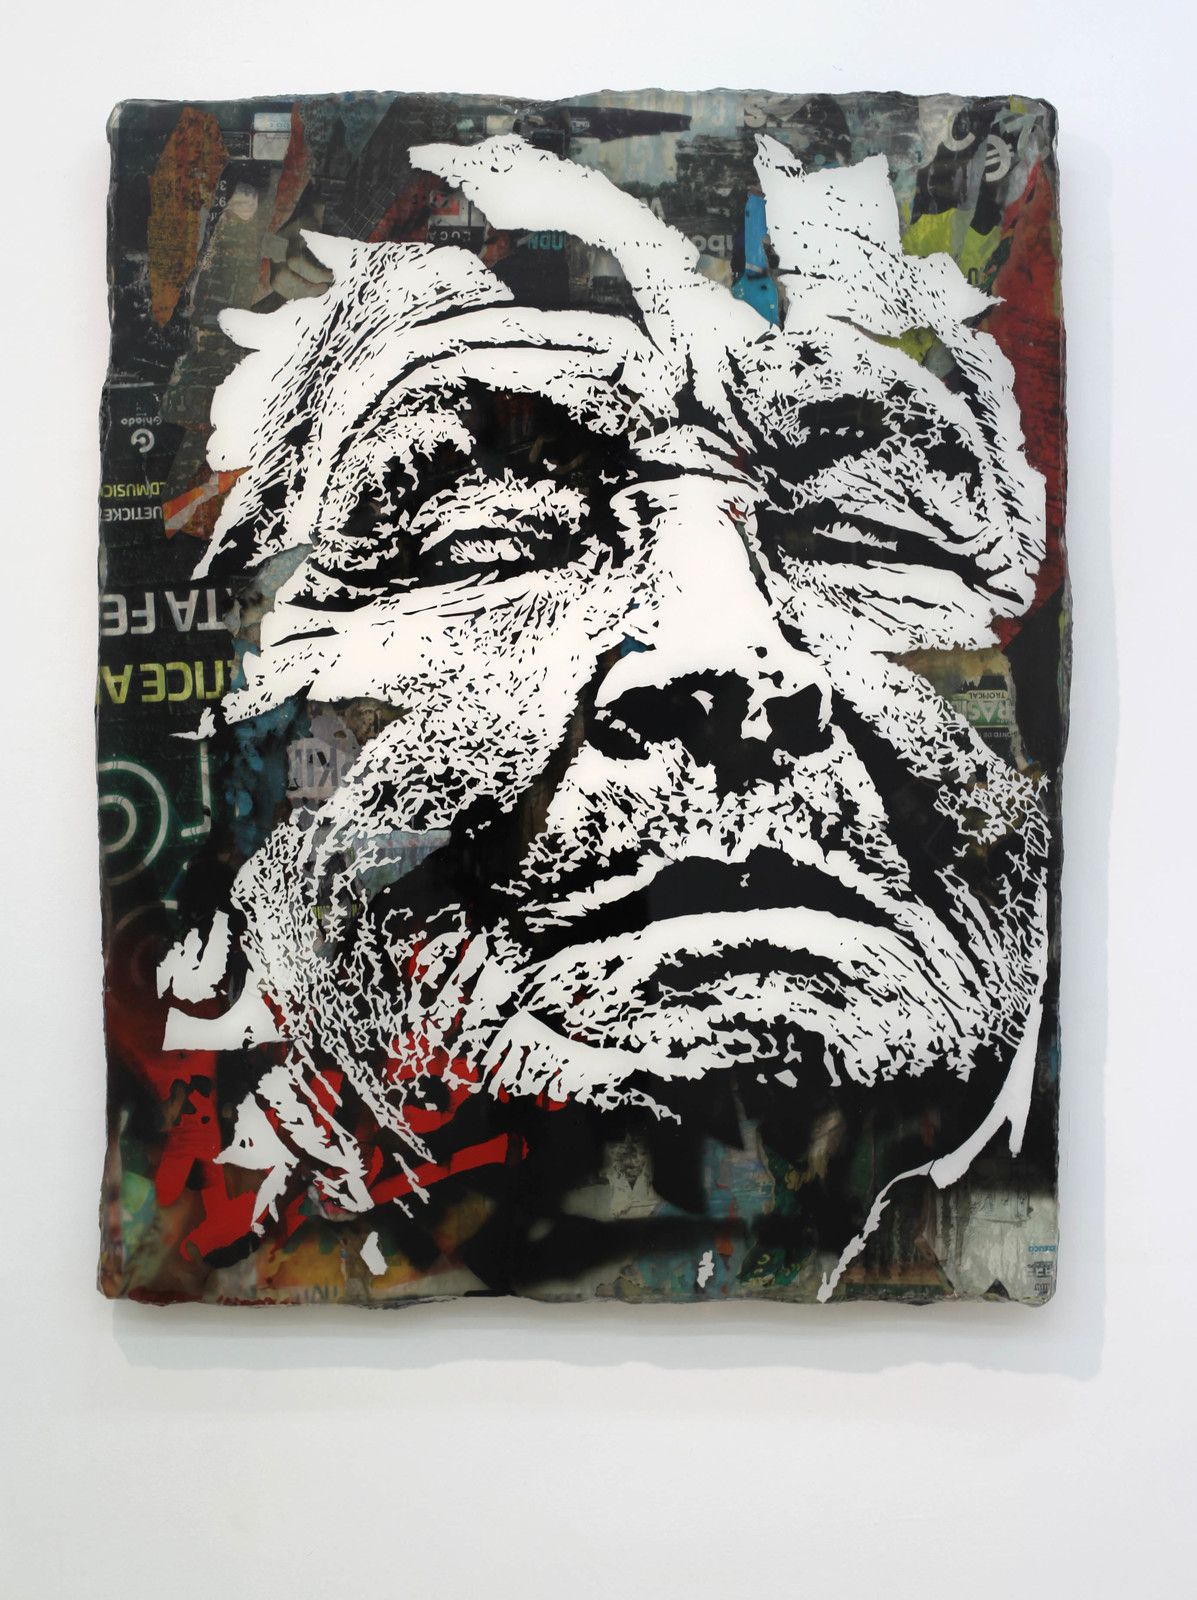 """Eolith series #05"", 2020 de VHILS - Courtesy Galerie Danysz - Paris © Photo Éric Simon"